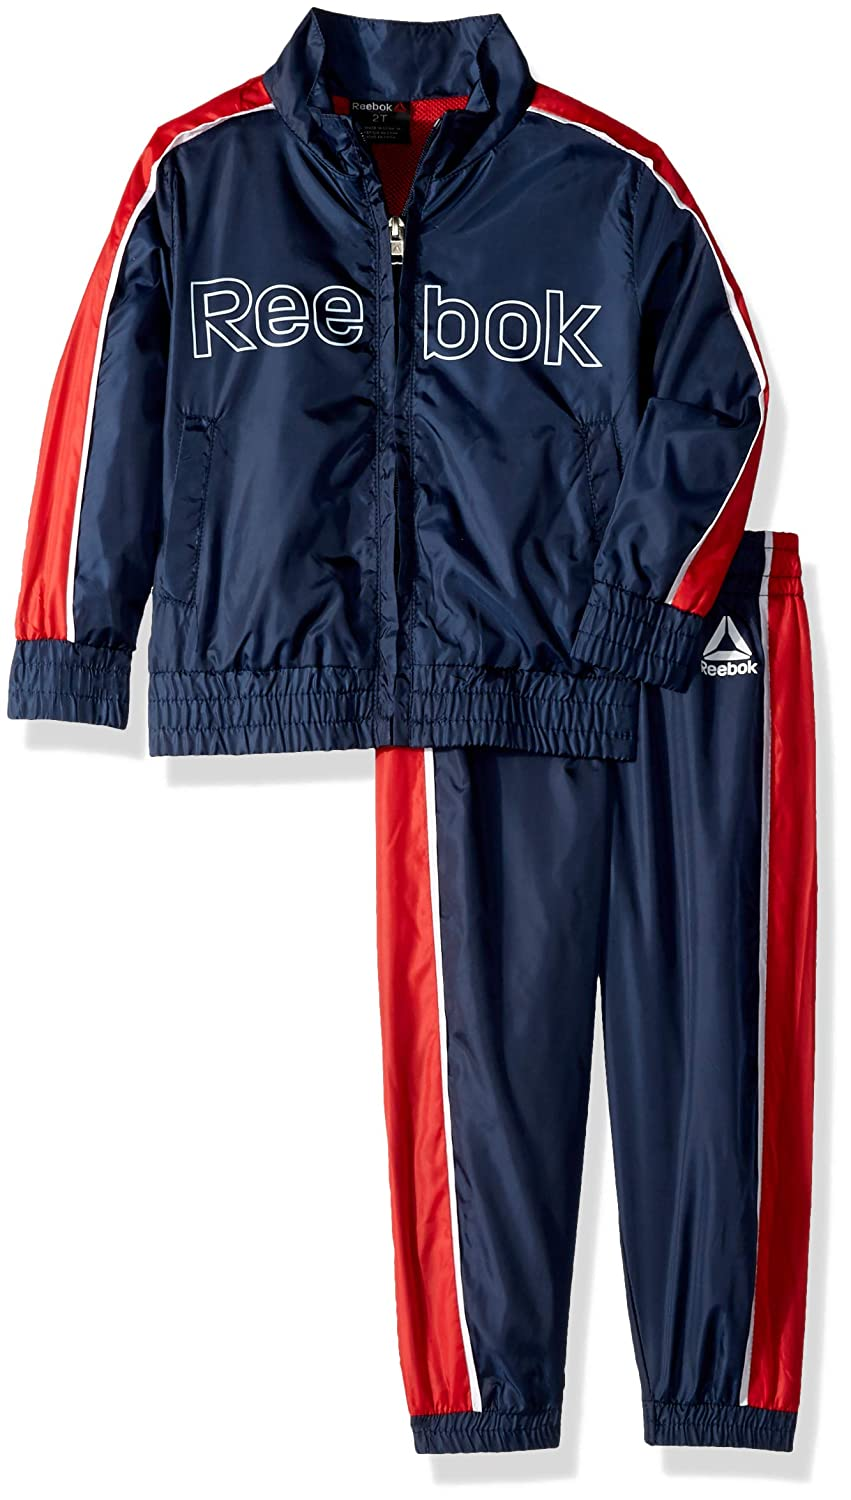 Reebok Boys Toddler Nylon Retro Windsuit Zip Up Jacket and Jog Pant B/_2437